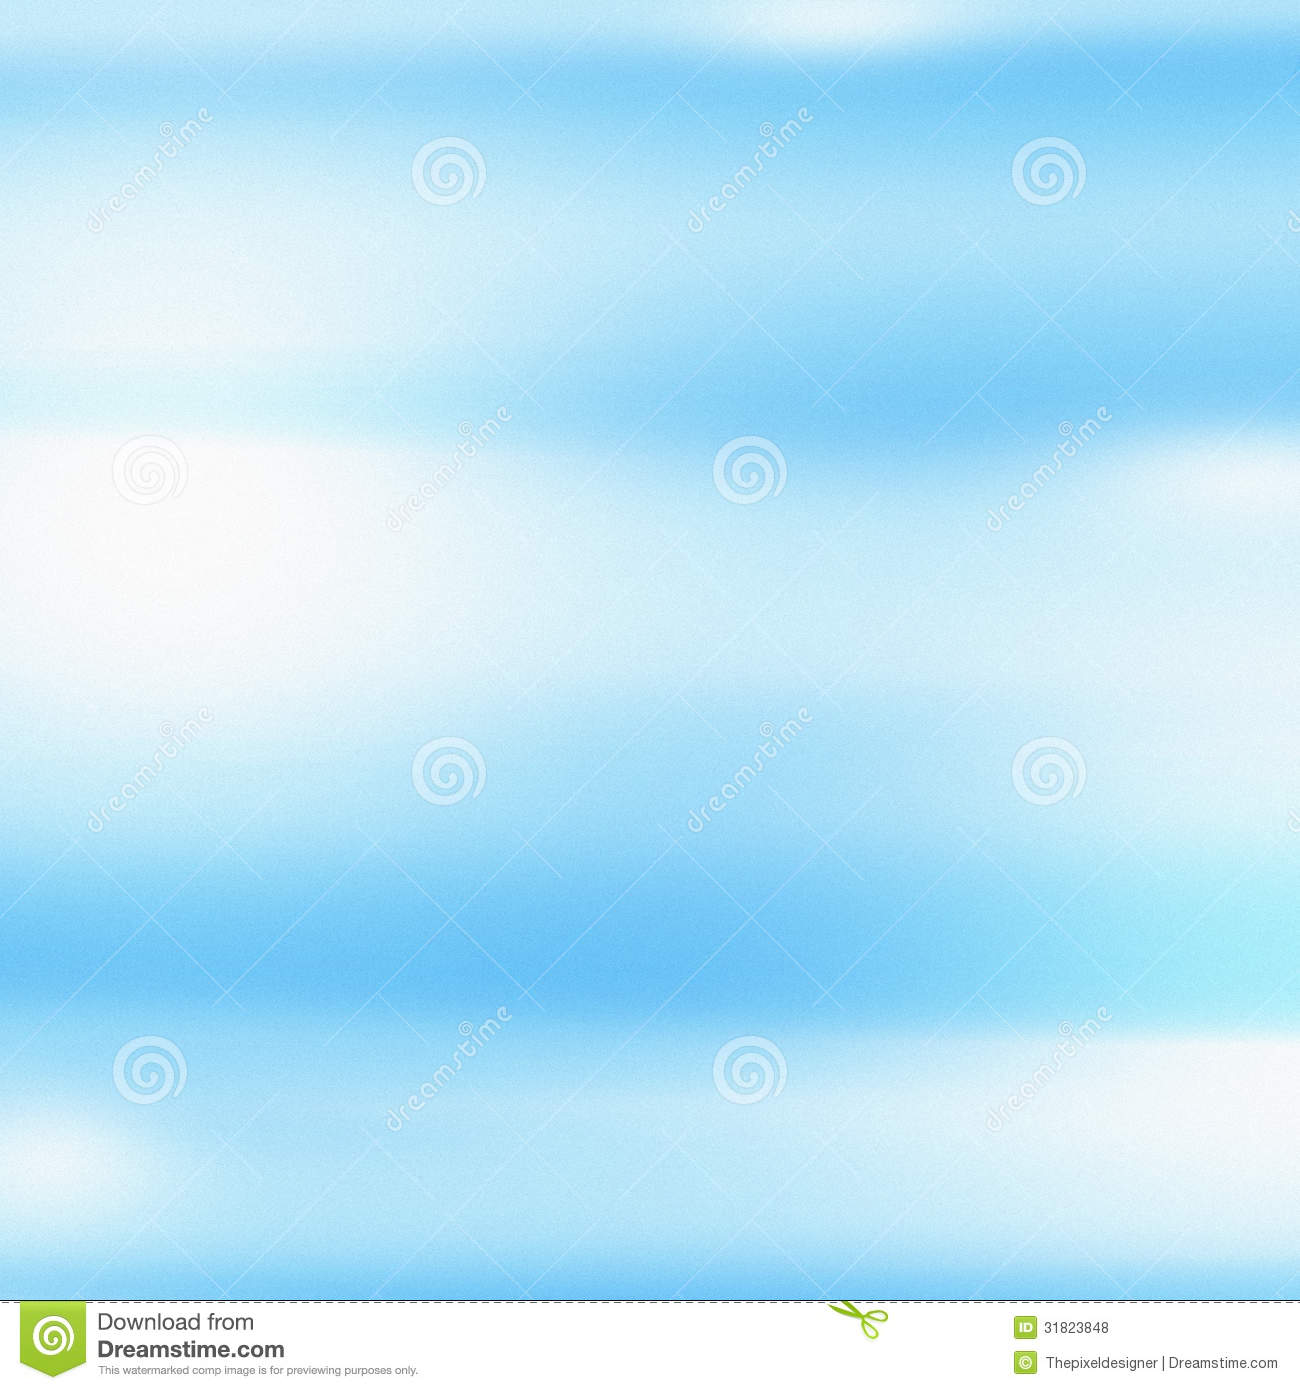 ... Background Abstract Design Royalty Free Stock Photos - Image: 31823848: dreamstime.com/royalty-free-stock-photos-blue-background-abstract...